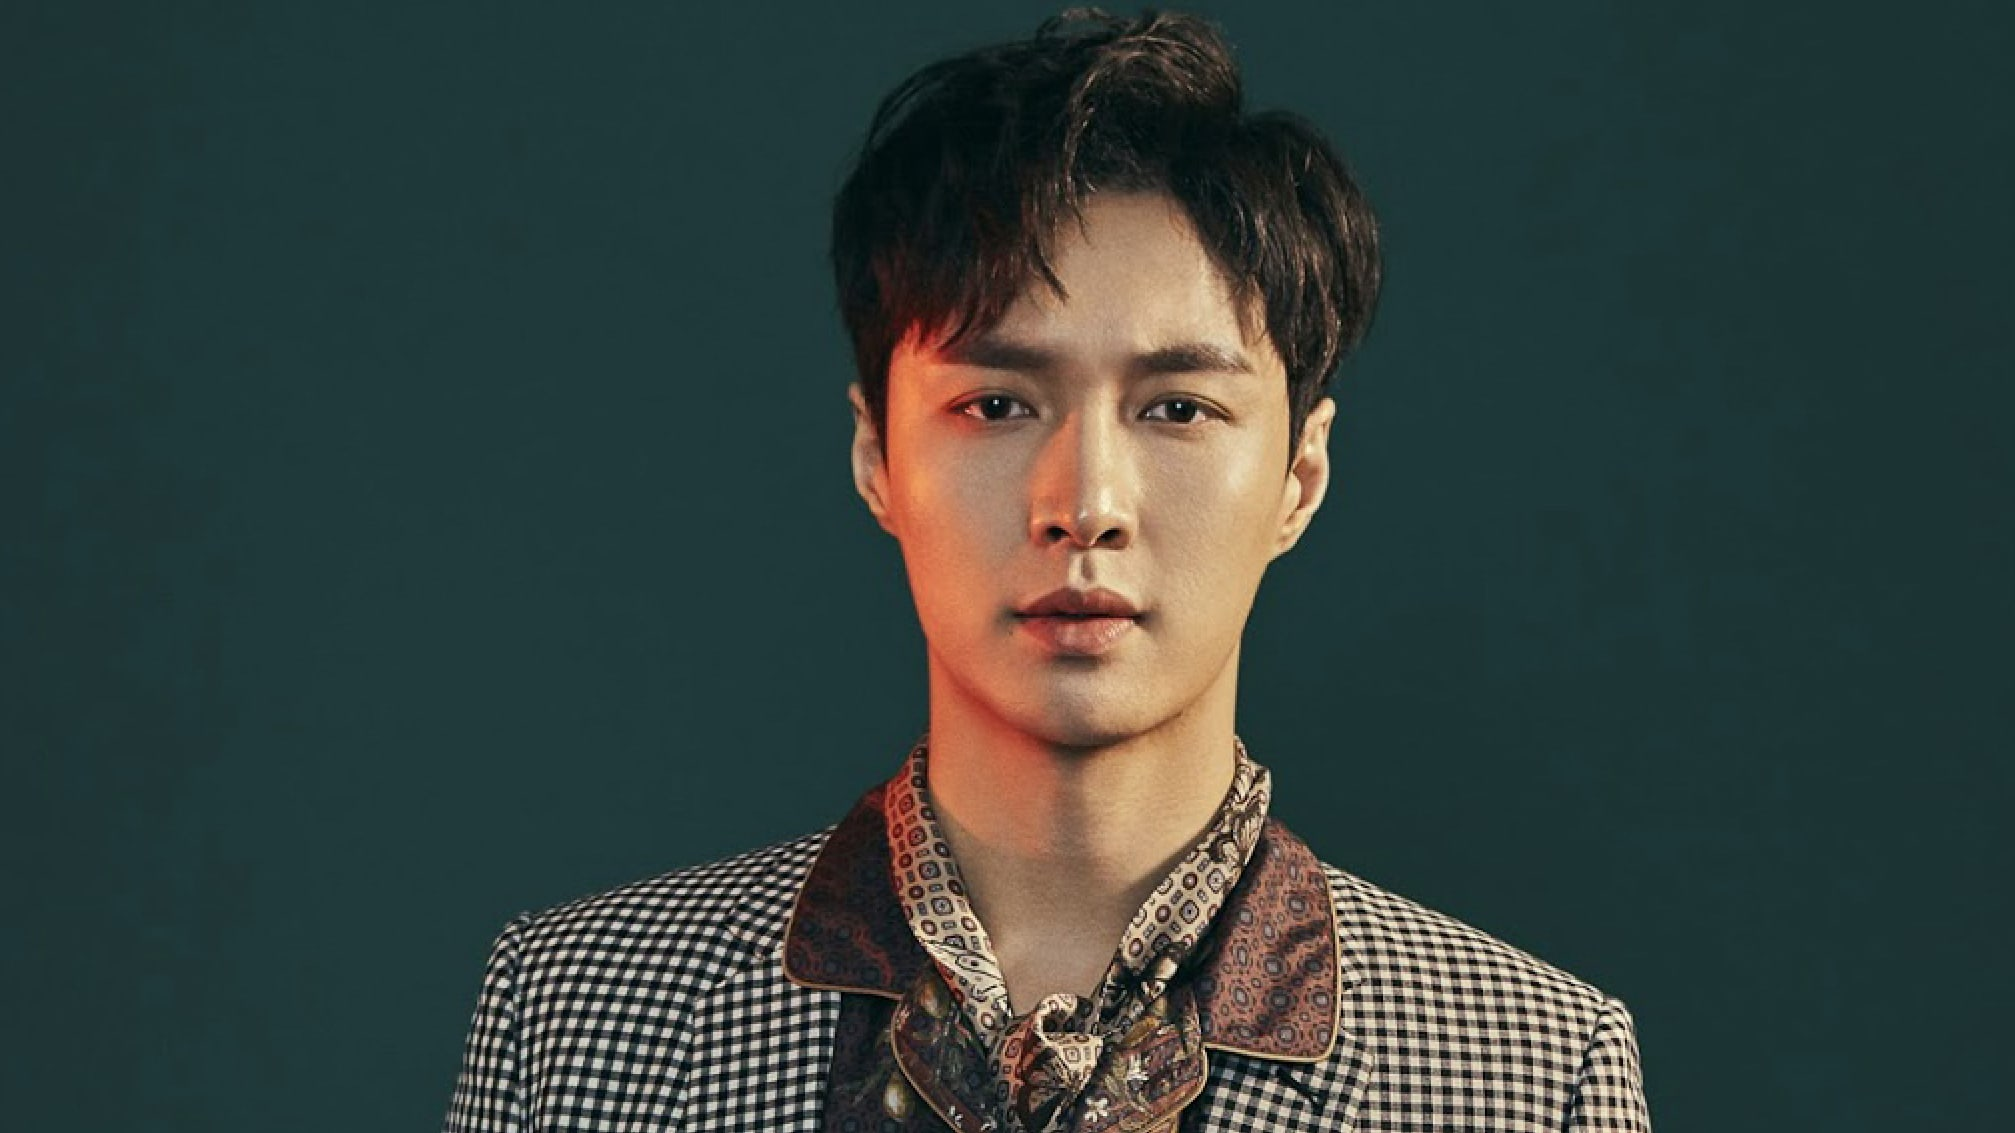 """EXO's Lay To Participate In Dubbing For Chinese Version Of """"Cars 3"""""""